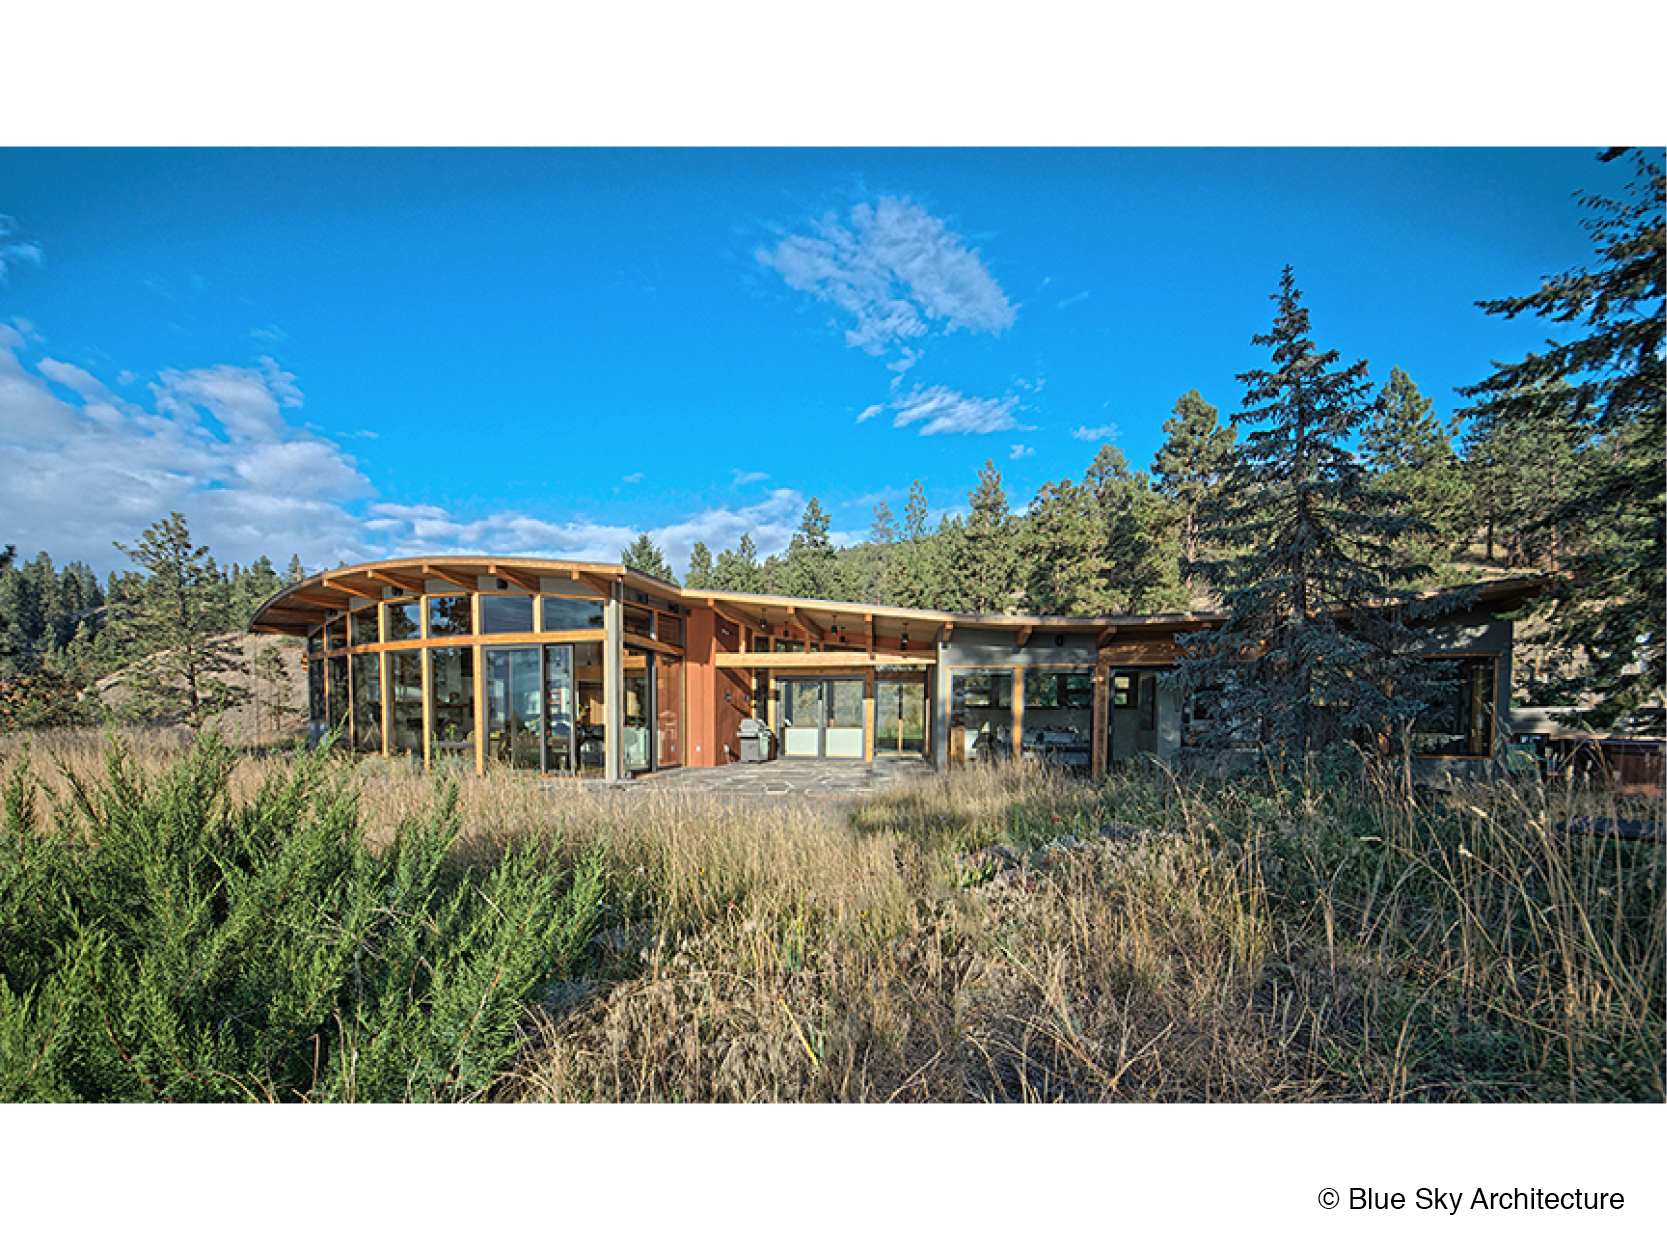 Full exterior view of the lakefront home design for Naramata Bench House